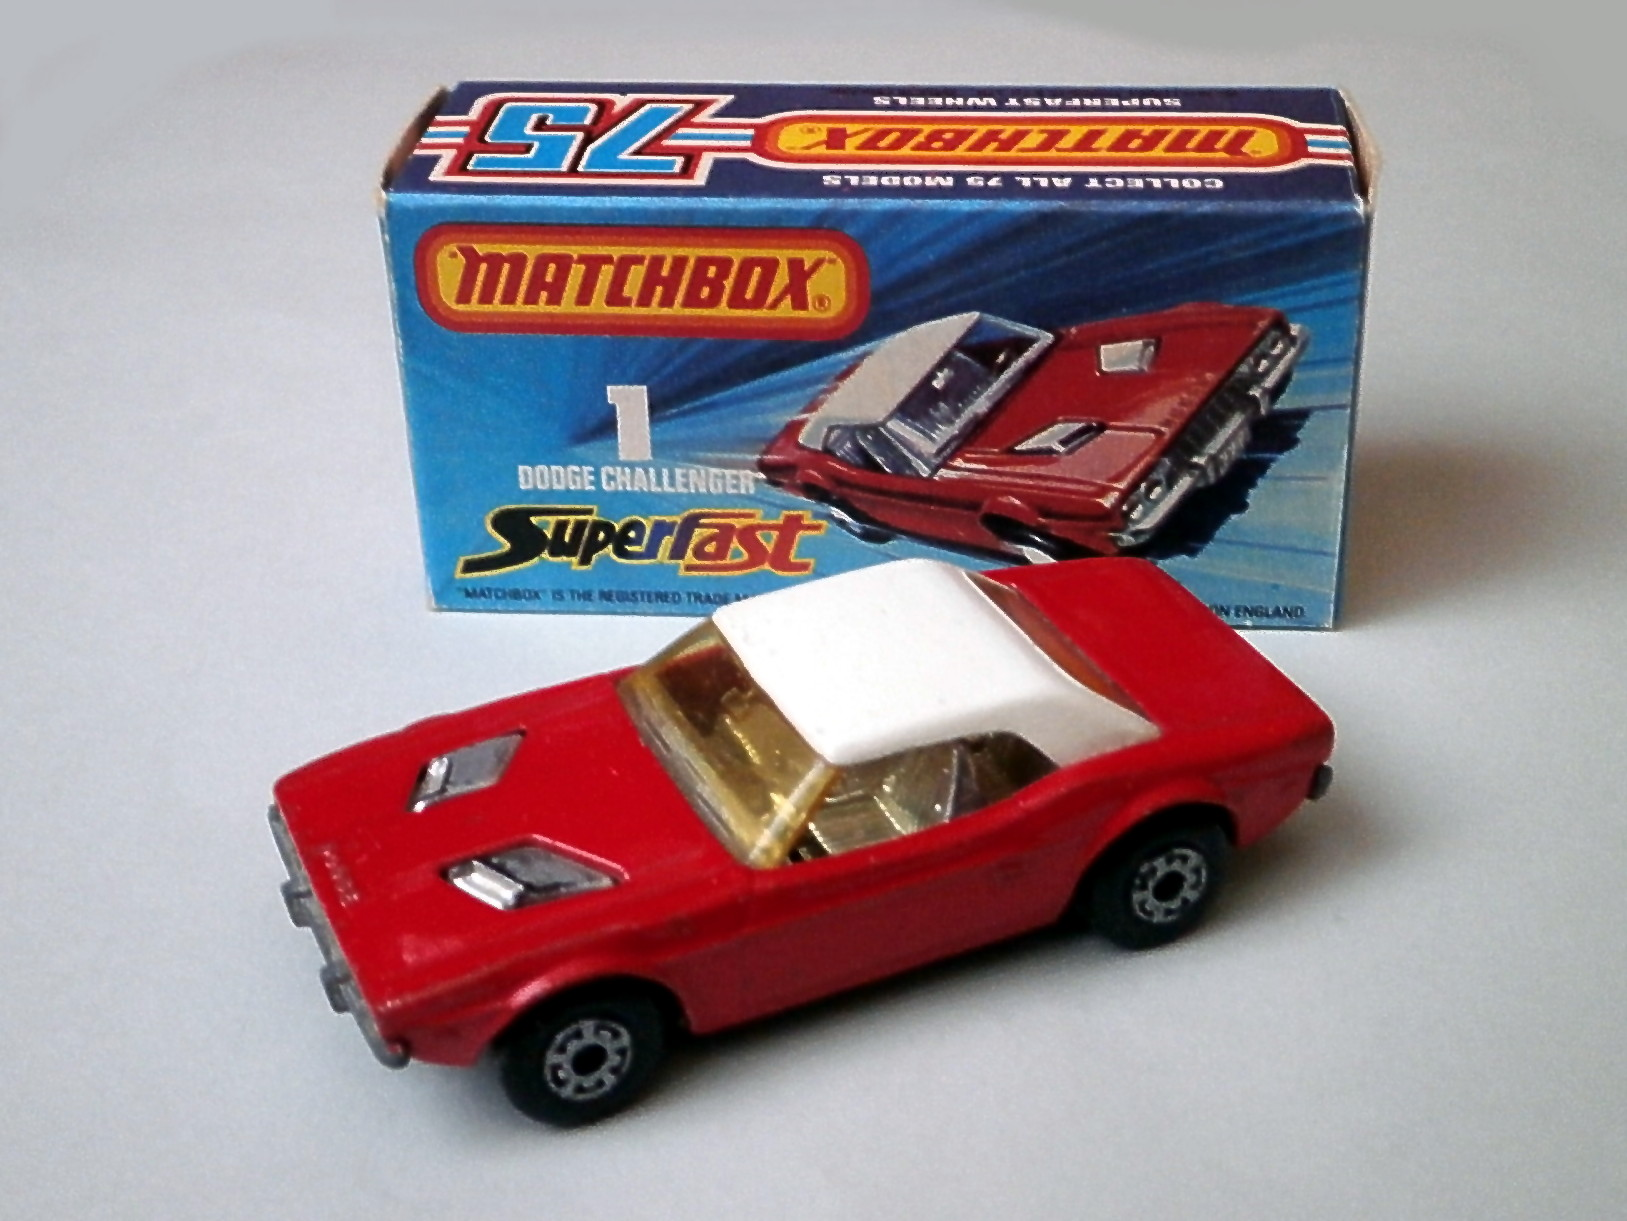 Dodge Challenger | Matchbox Cars Wiki | FANDOM powered by Wikia